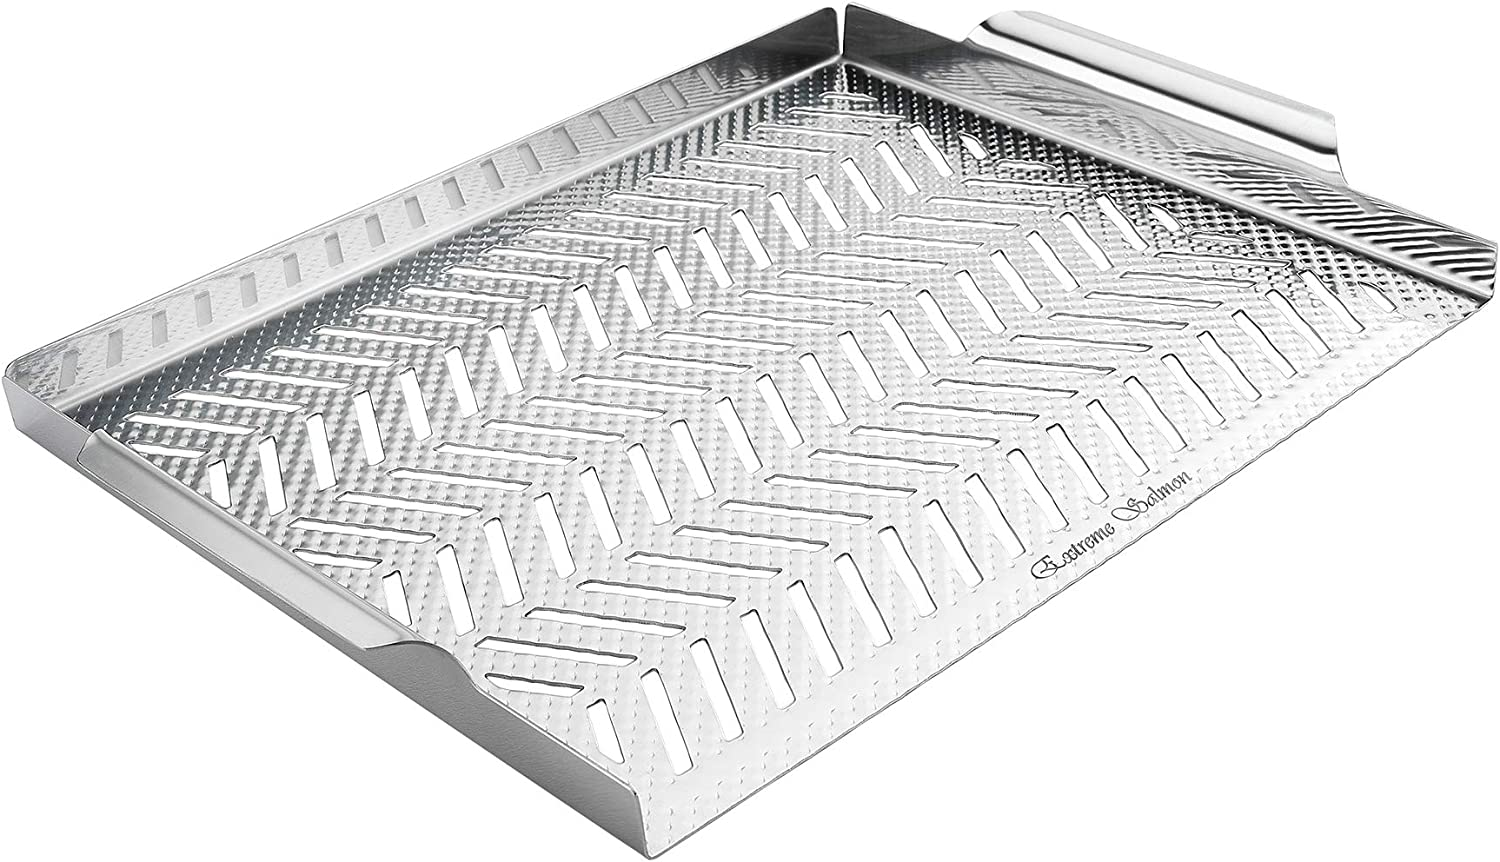 Extreme Salmon BBQ Grill Pan for Vegetables, Embossed Stainless Steel Grill Topper Pan with Handles Professional Grill Cookware Grill Accessories for Barbecue Grills Outdoor Cooking : Garden & Outdoor